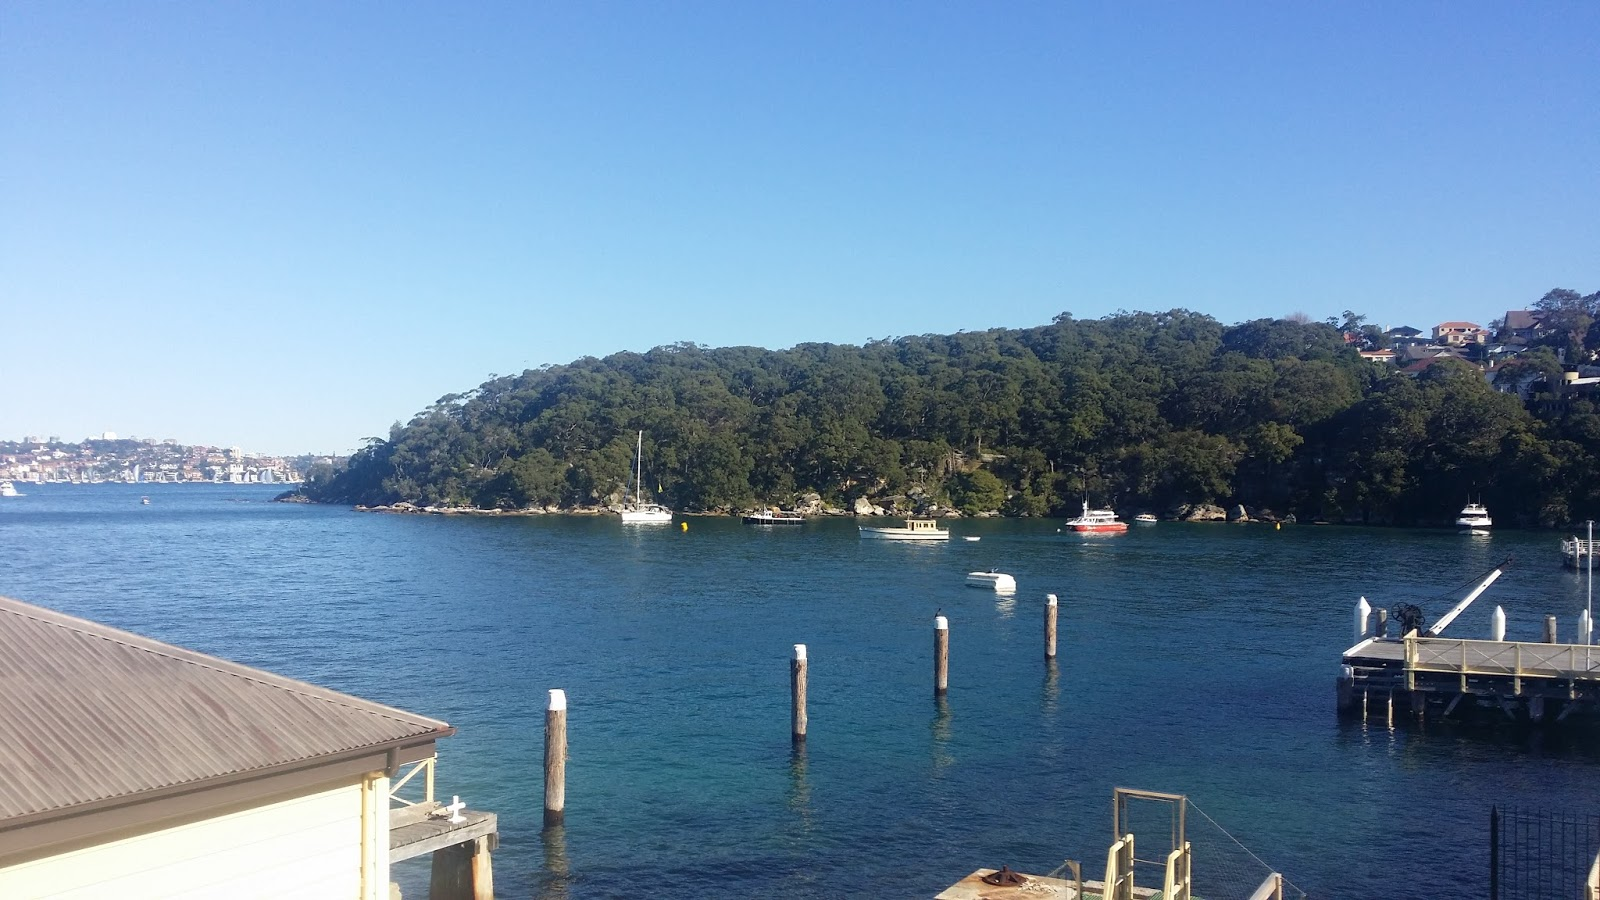 I Caught The  Bus From Opposite The Hmas Penguin Naval Base Back To Mosman And Connected Onto The Balmoral Beach Bus I Arrived At Balmoral Beach At